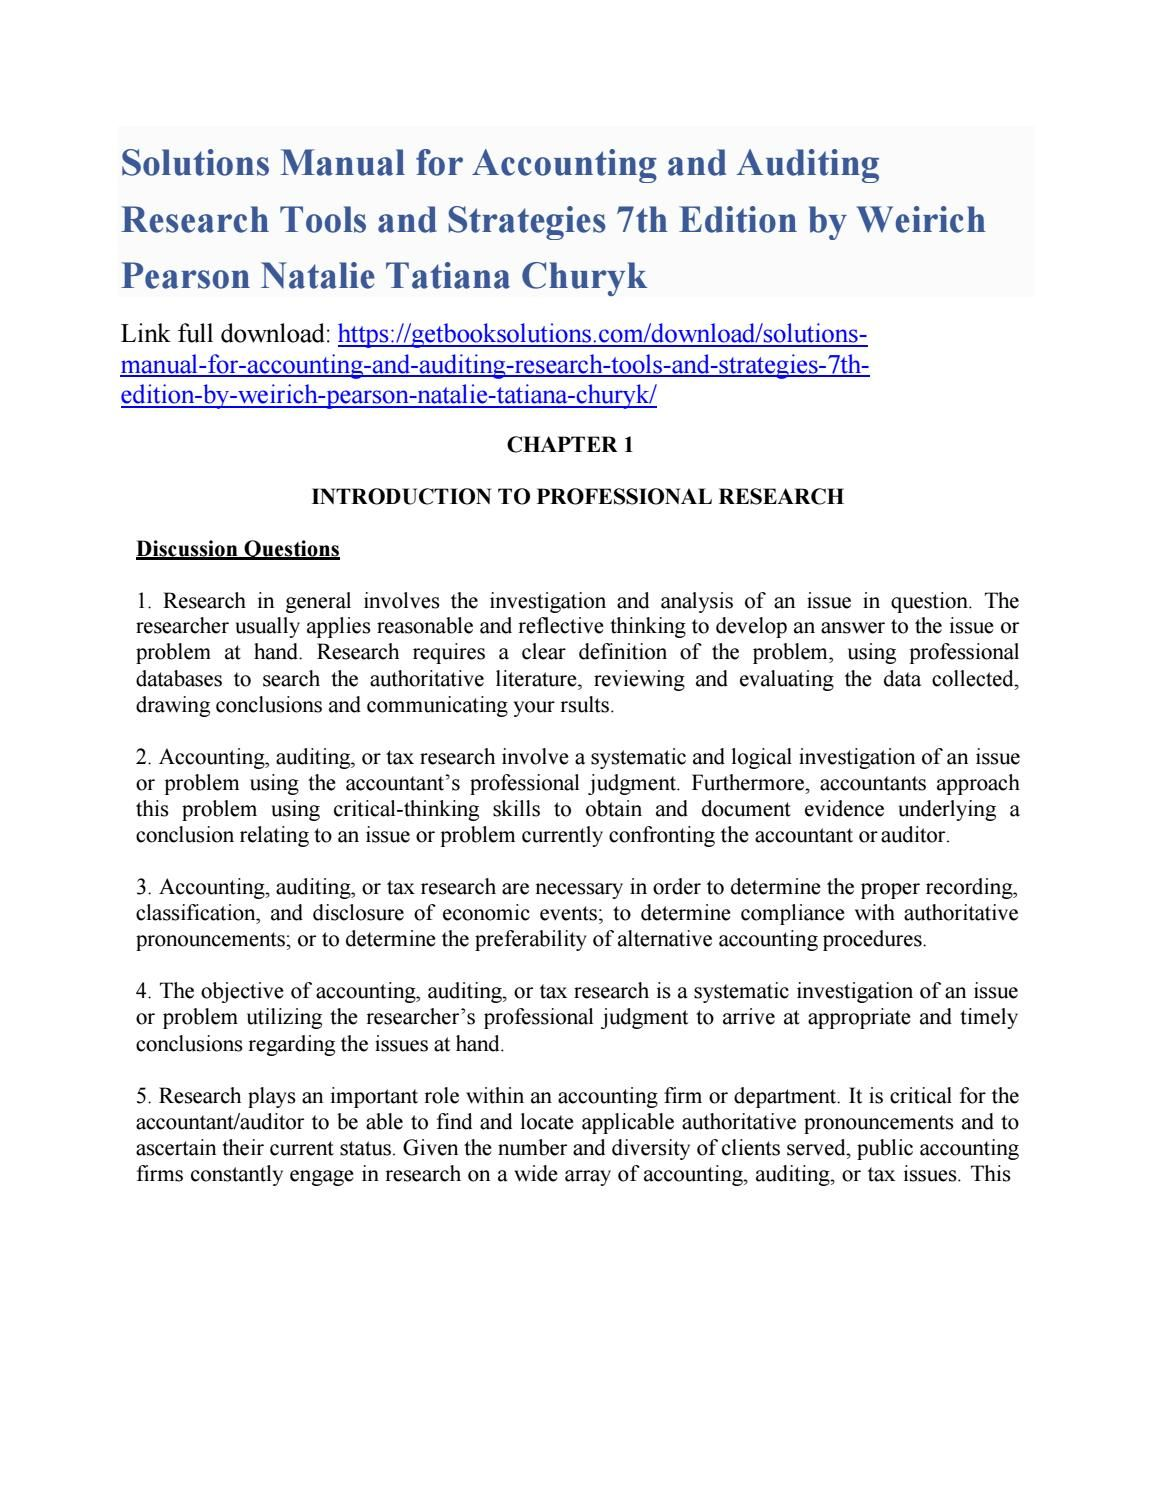 Solutions manual for accounting and auditing research tools and strategies  7th edition by weirich pe